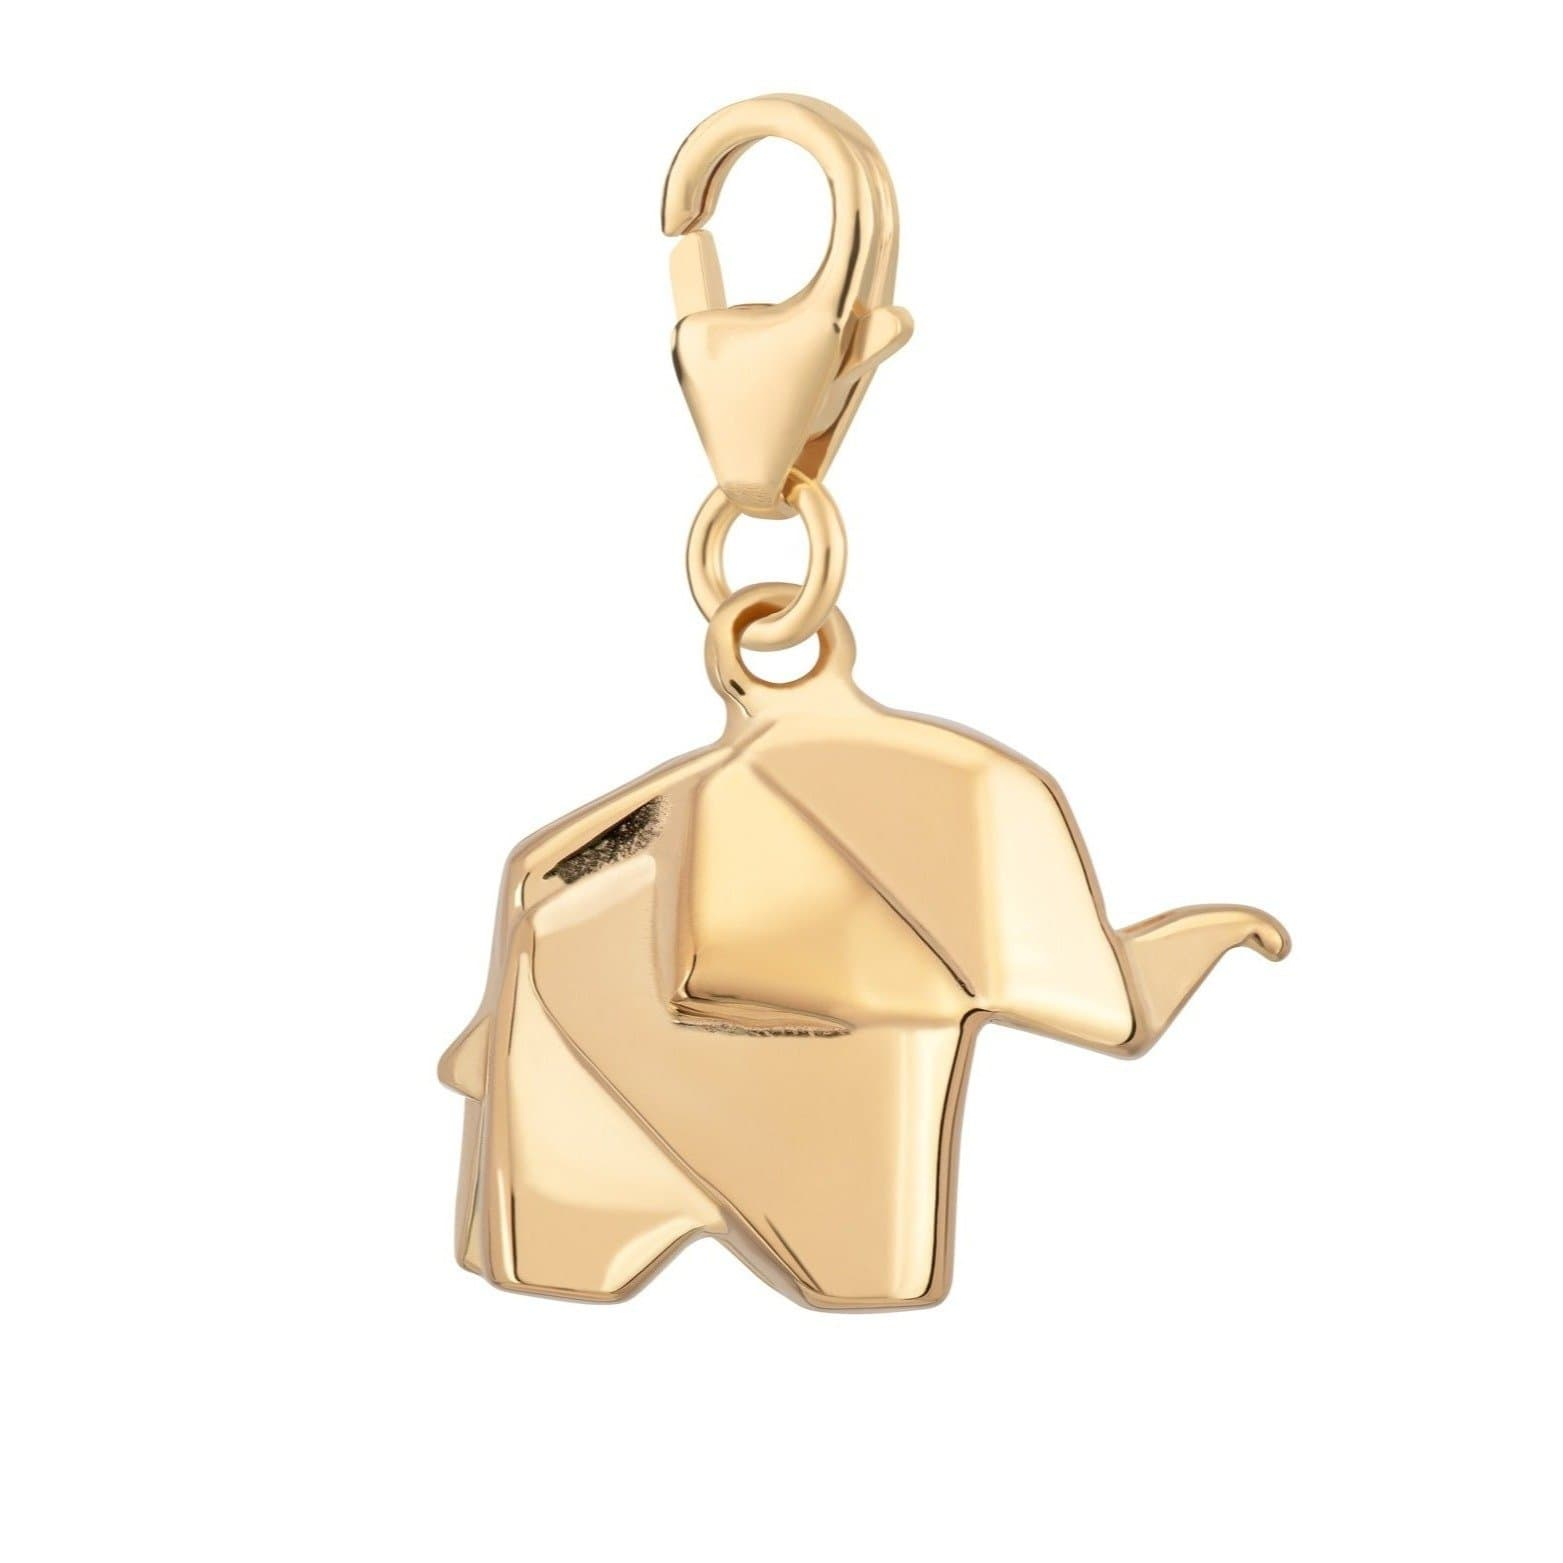 Gold Plated Origami Elephant Charm